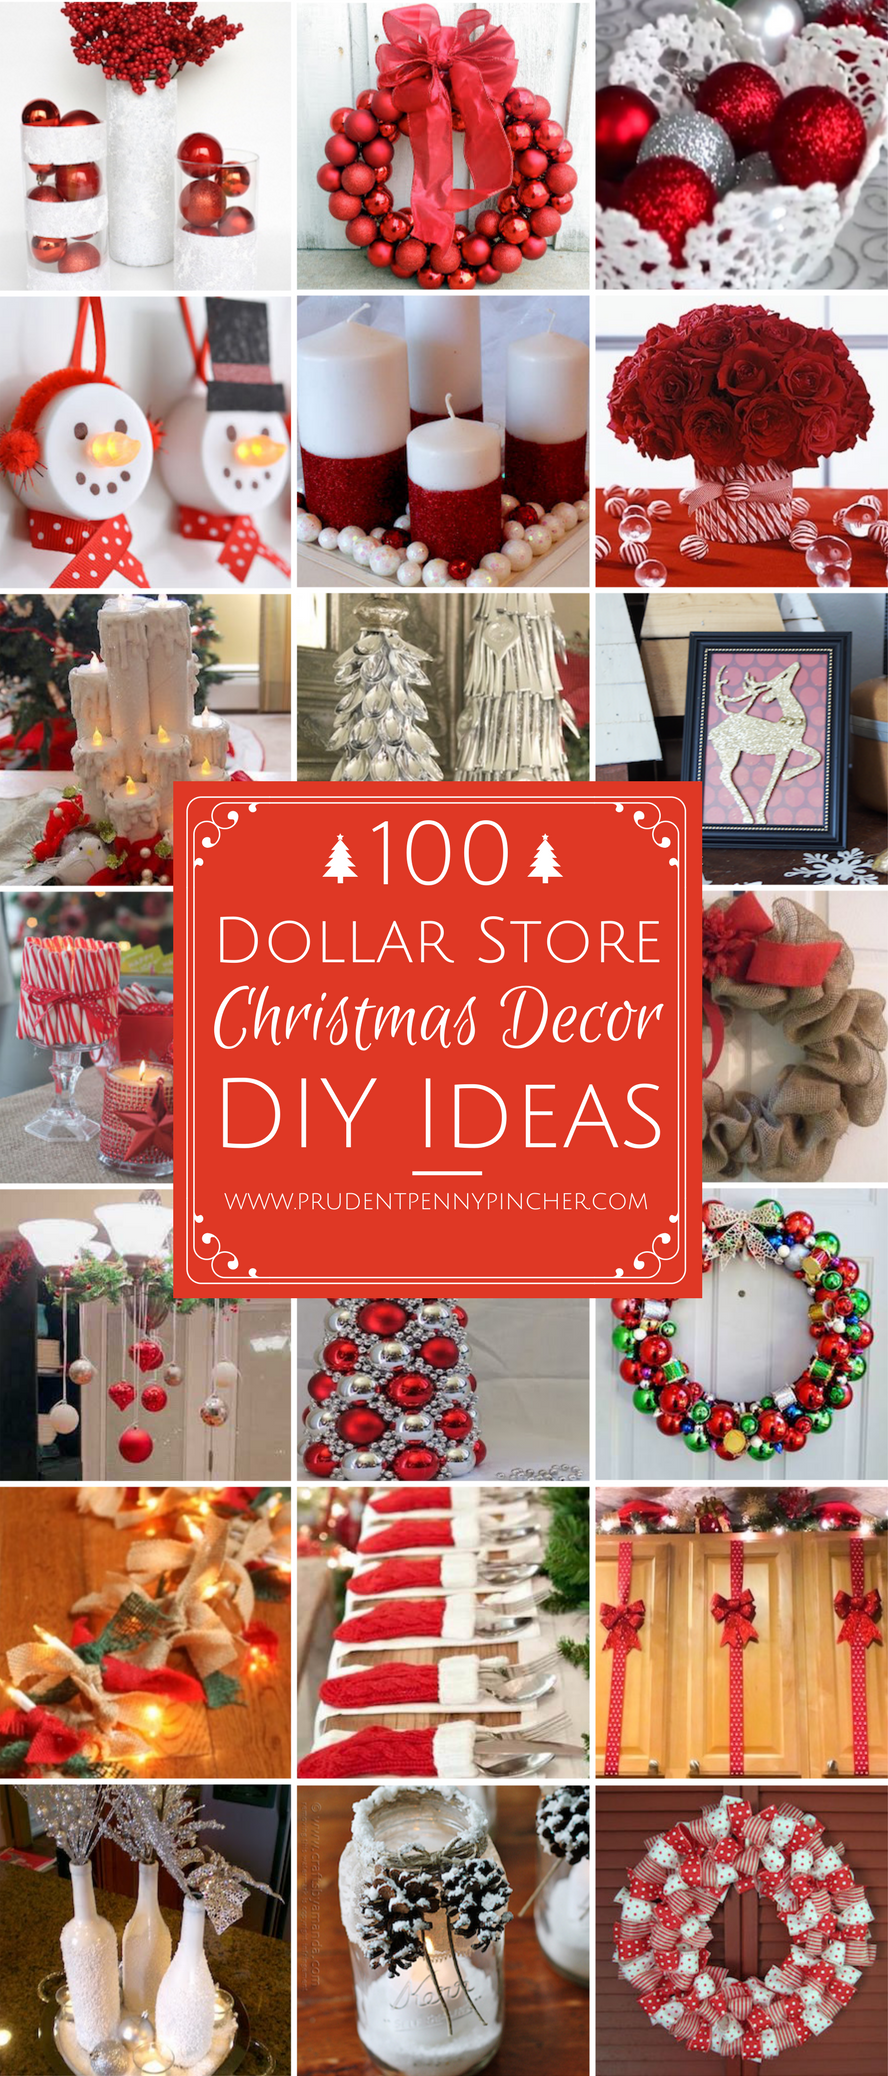 100 dollar store christmas decor diy ideas prudent penny Decorating items shop near me